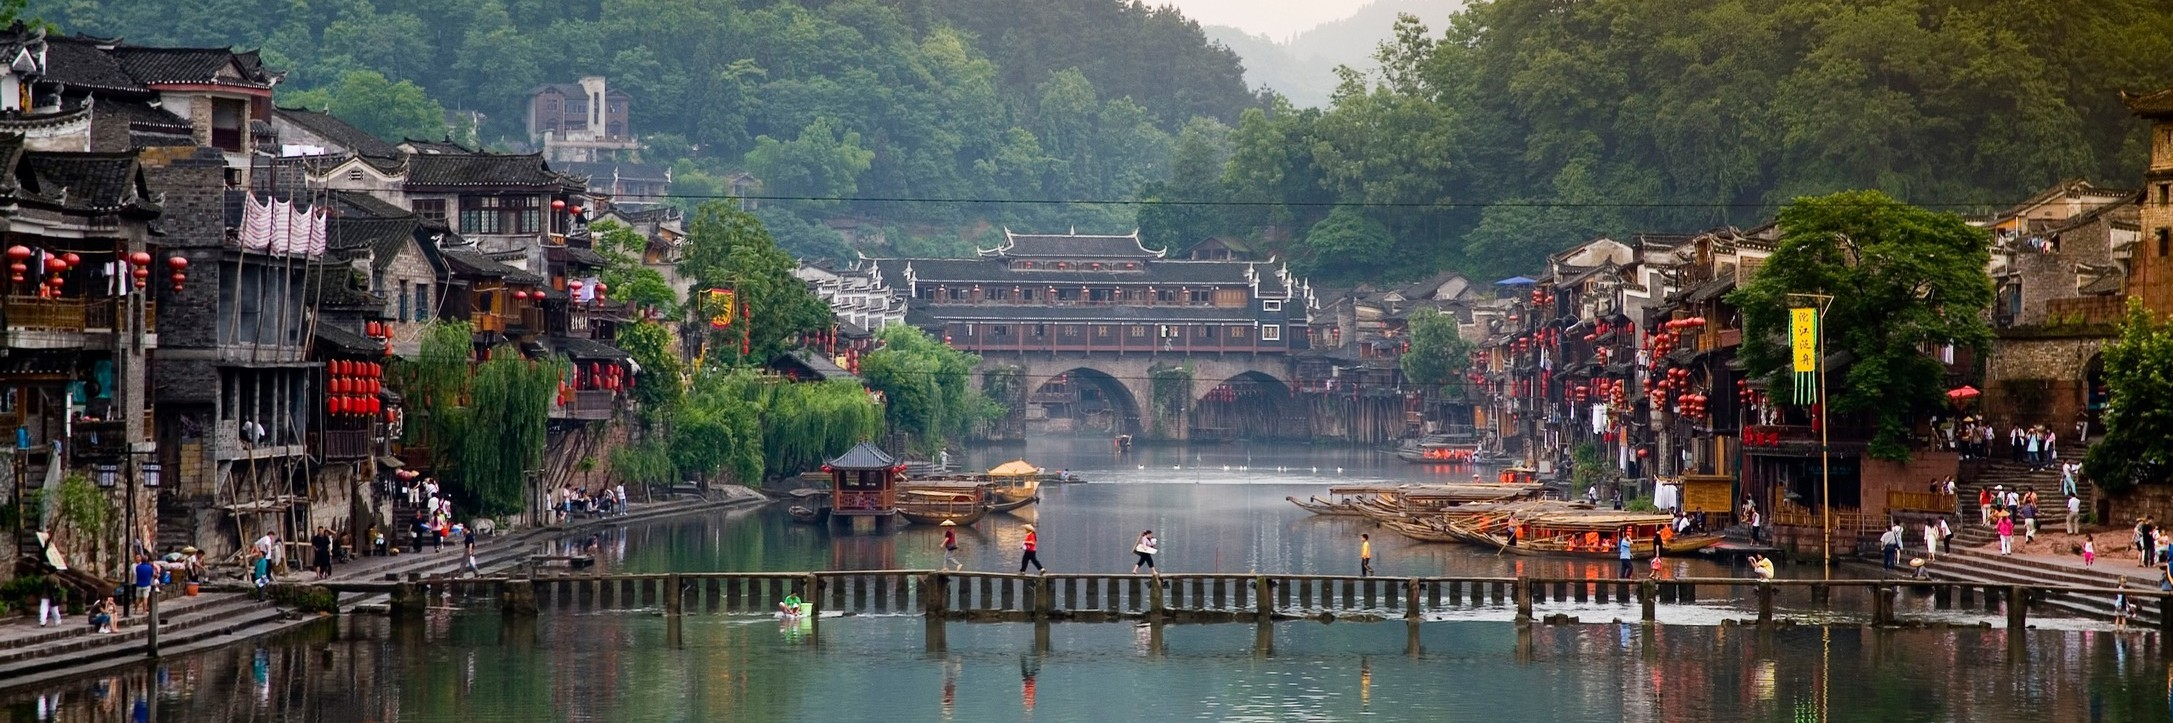 China ZhangJiaJie FENGHUANG ancient town Tours